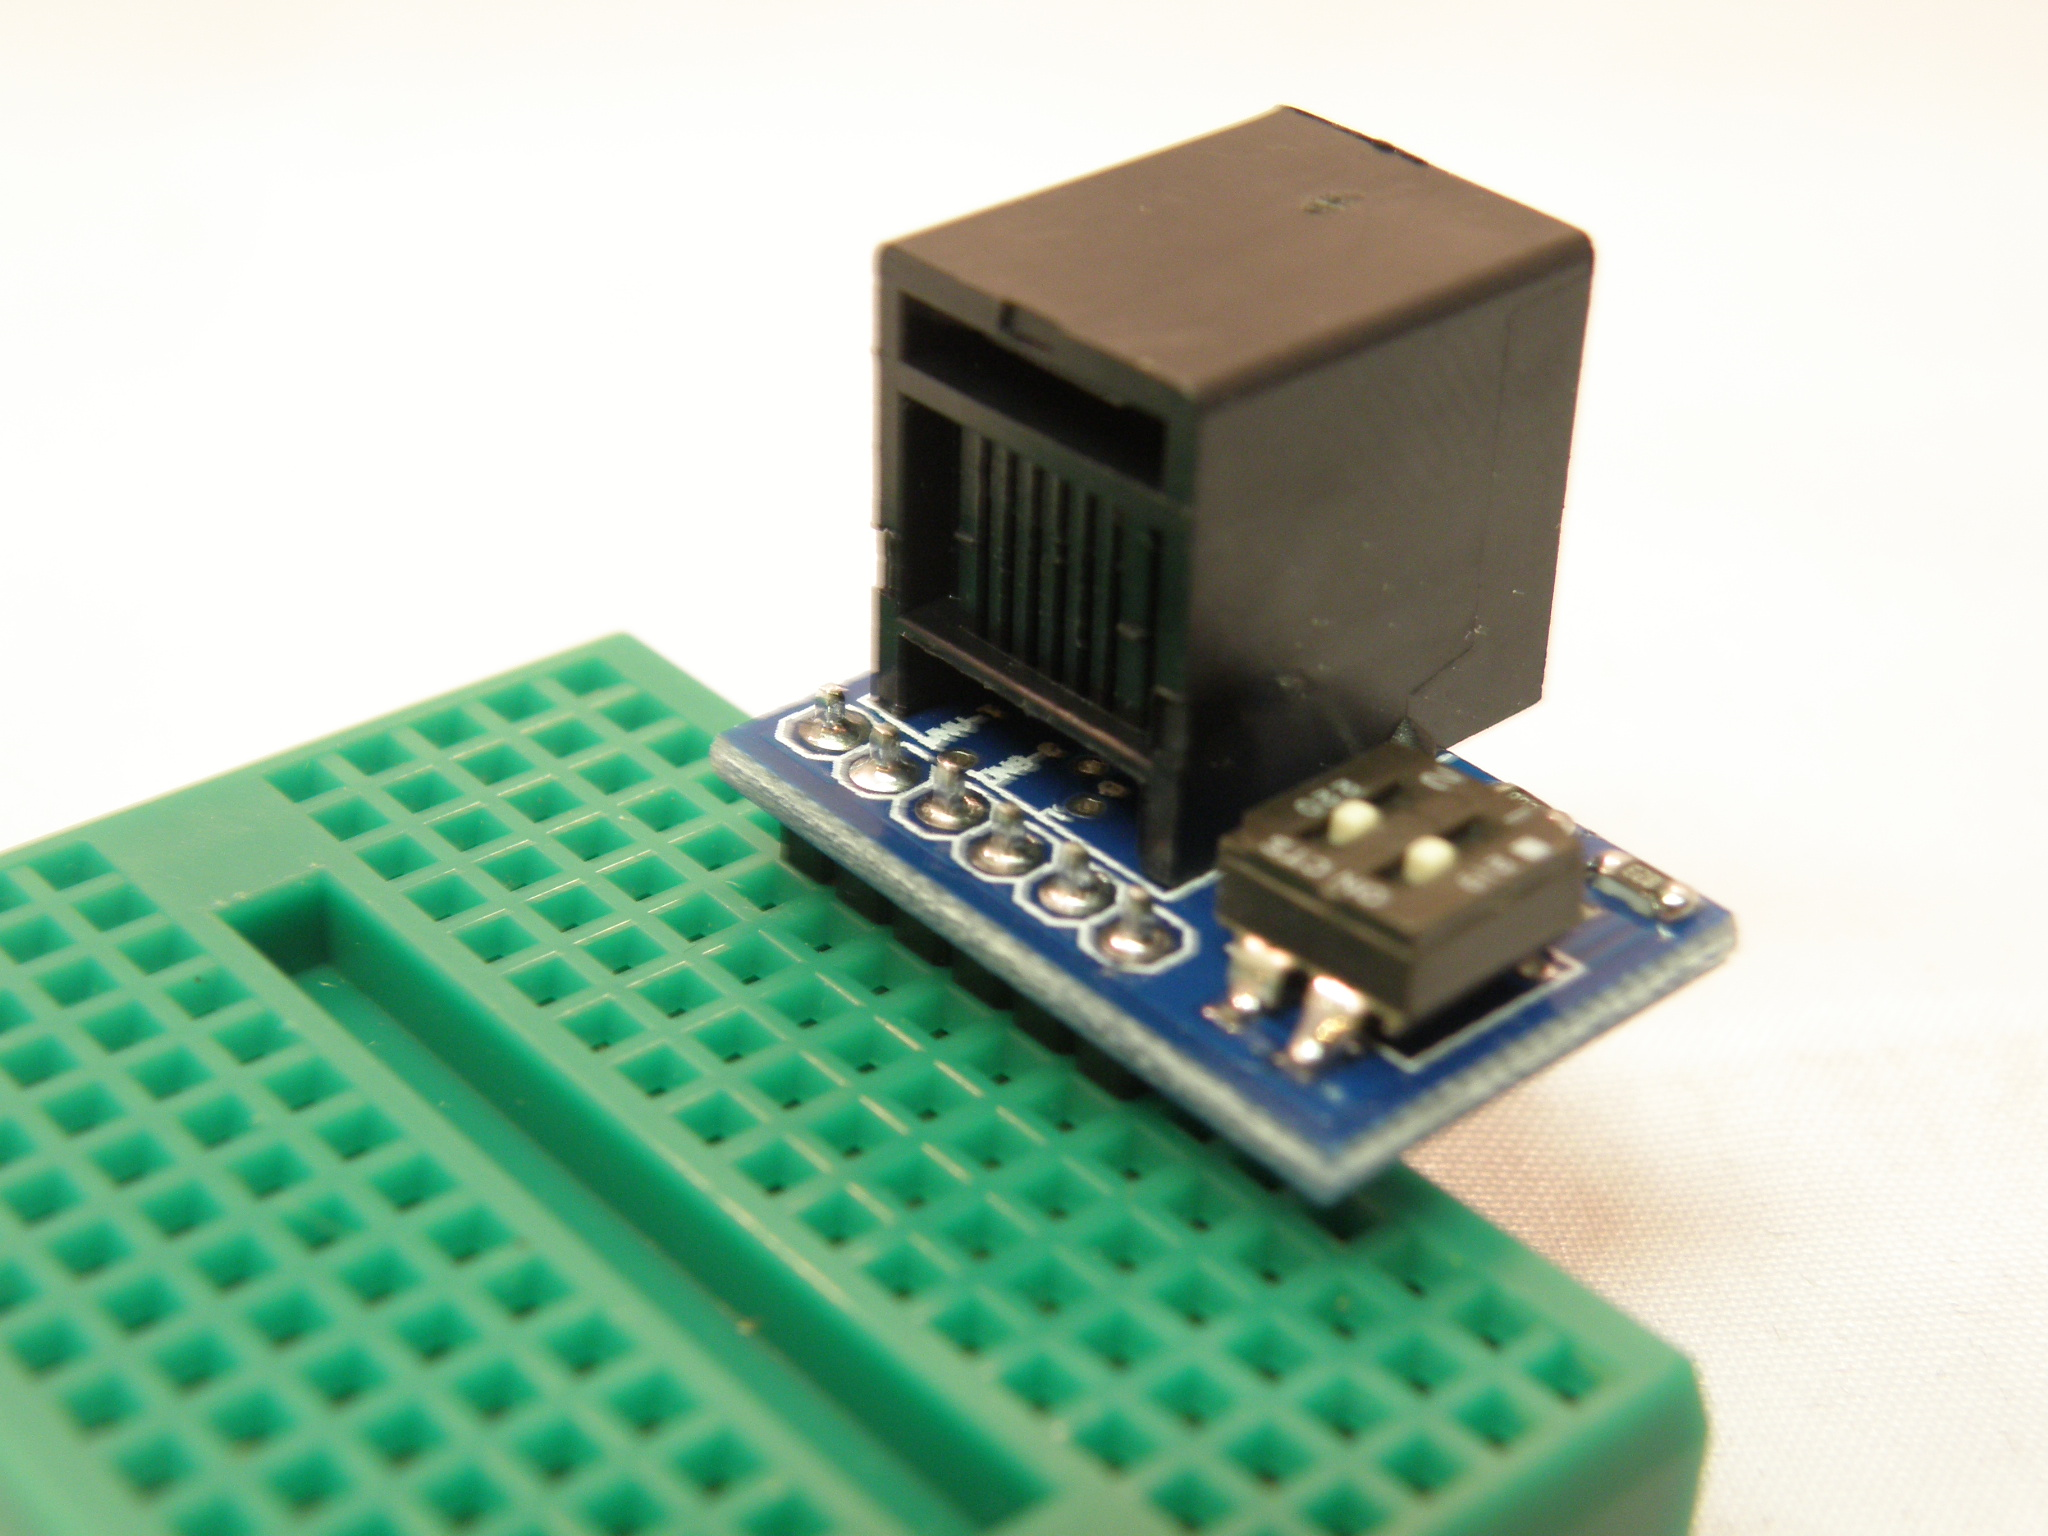 Breadboard Adapter and Breakout for the LEGO Mindstorms NXT